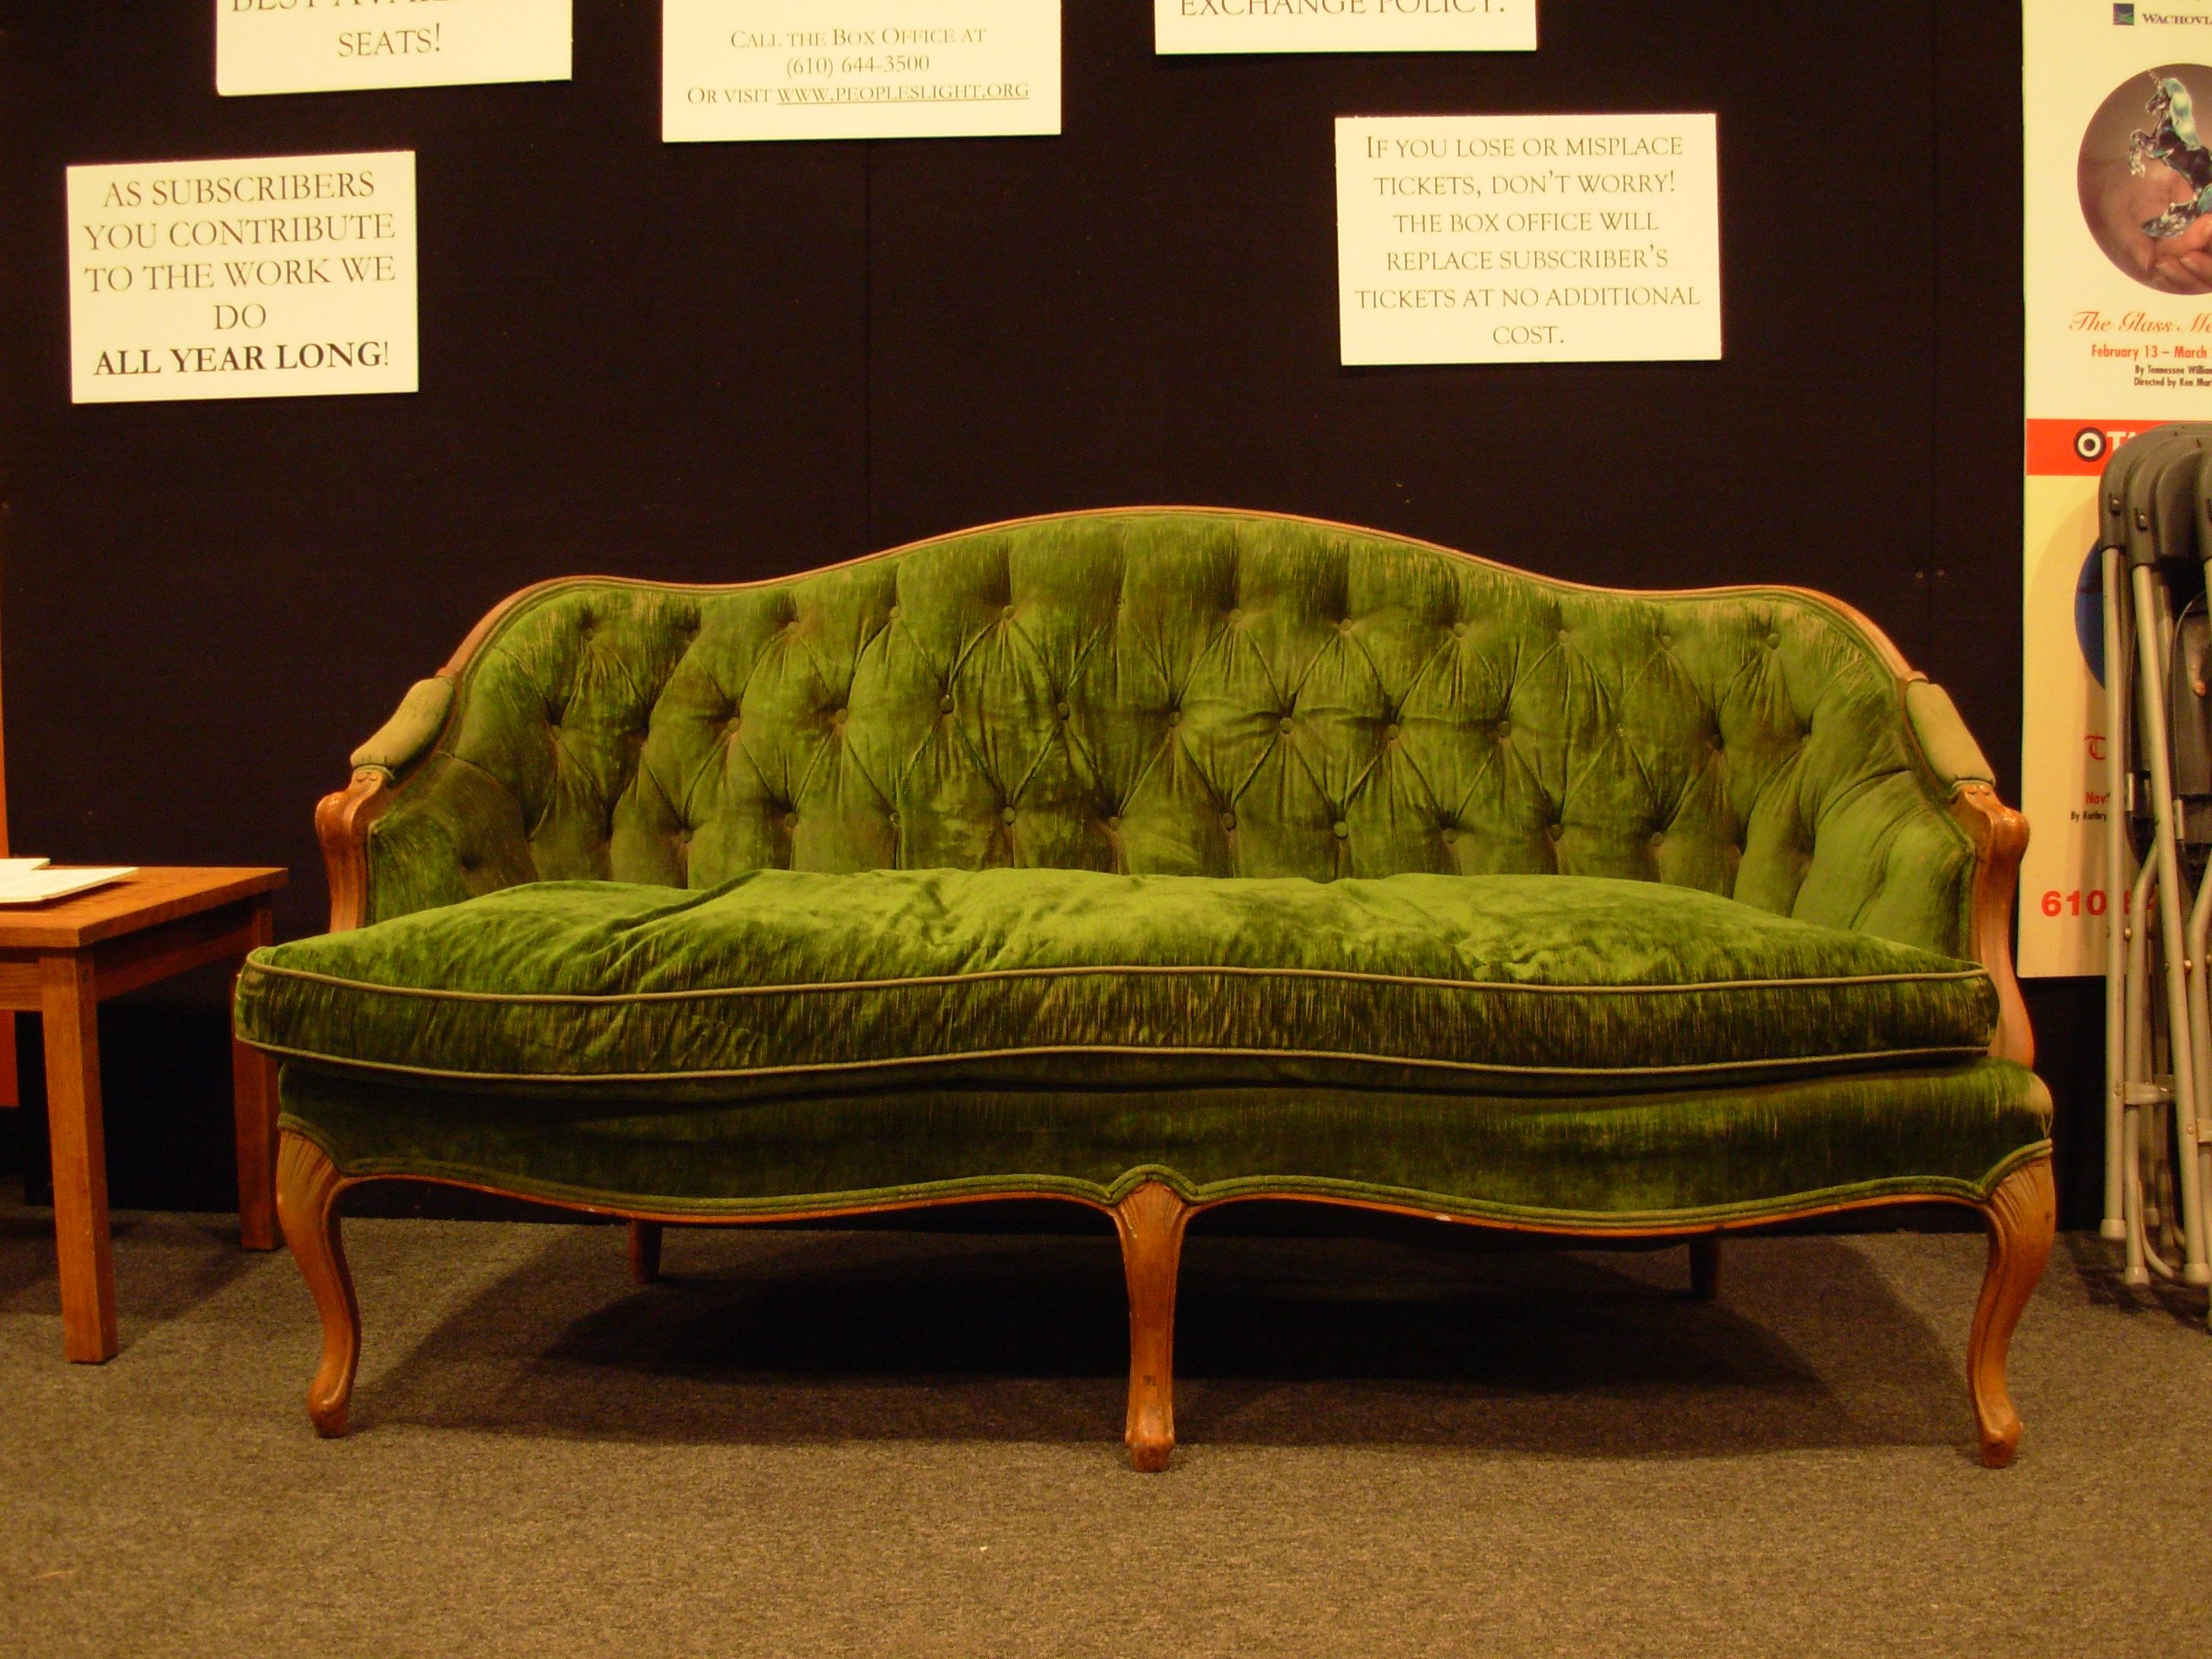 hd ideas handy with interesting spring green park arm aricept avenue chair velvet to loveseat regard and living ottoman